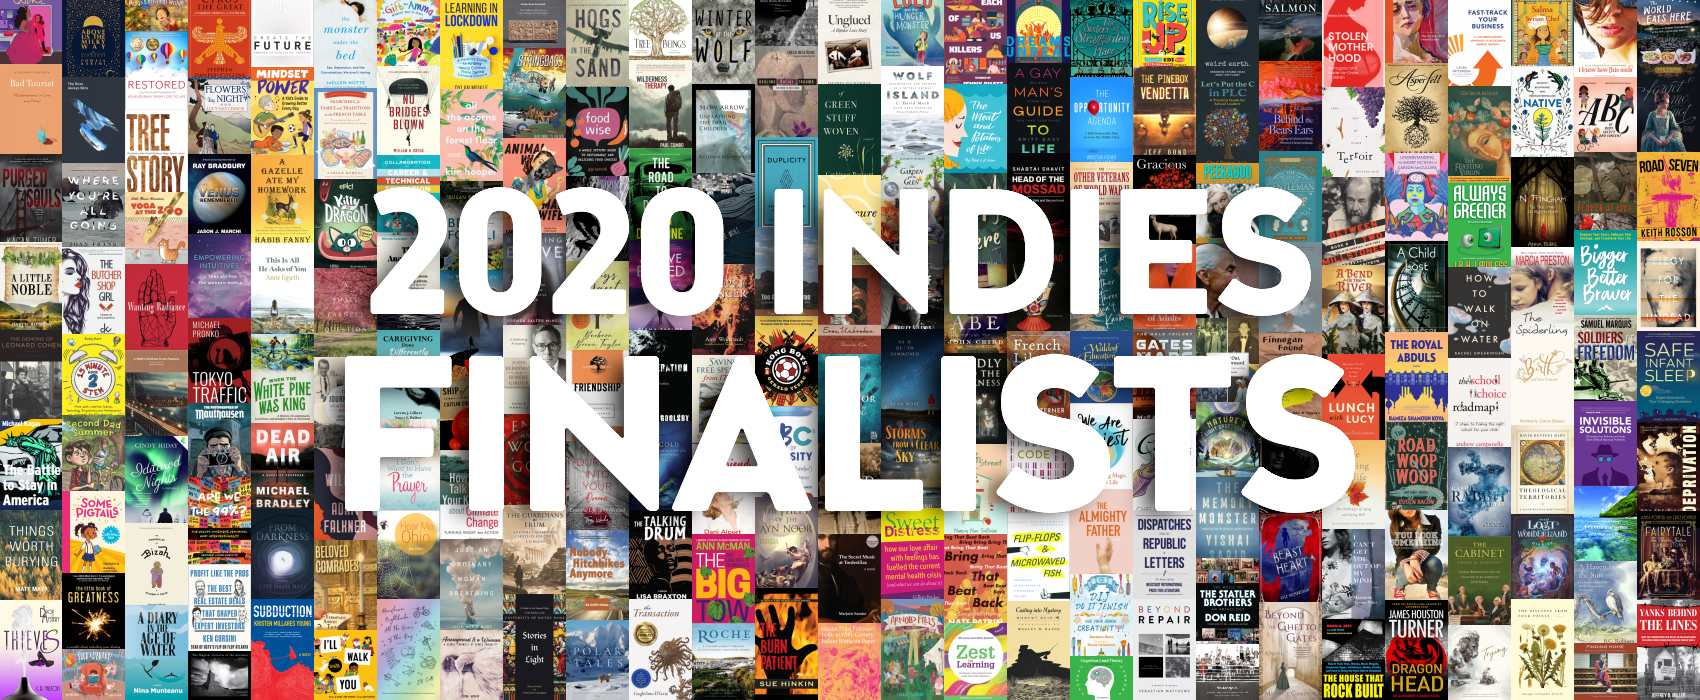 """""""2020 INDIES Finalists"""" on top of collage of covers of books that are 2020 INDIES Finalists."""